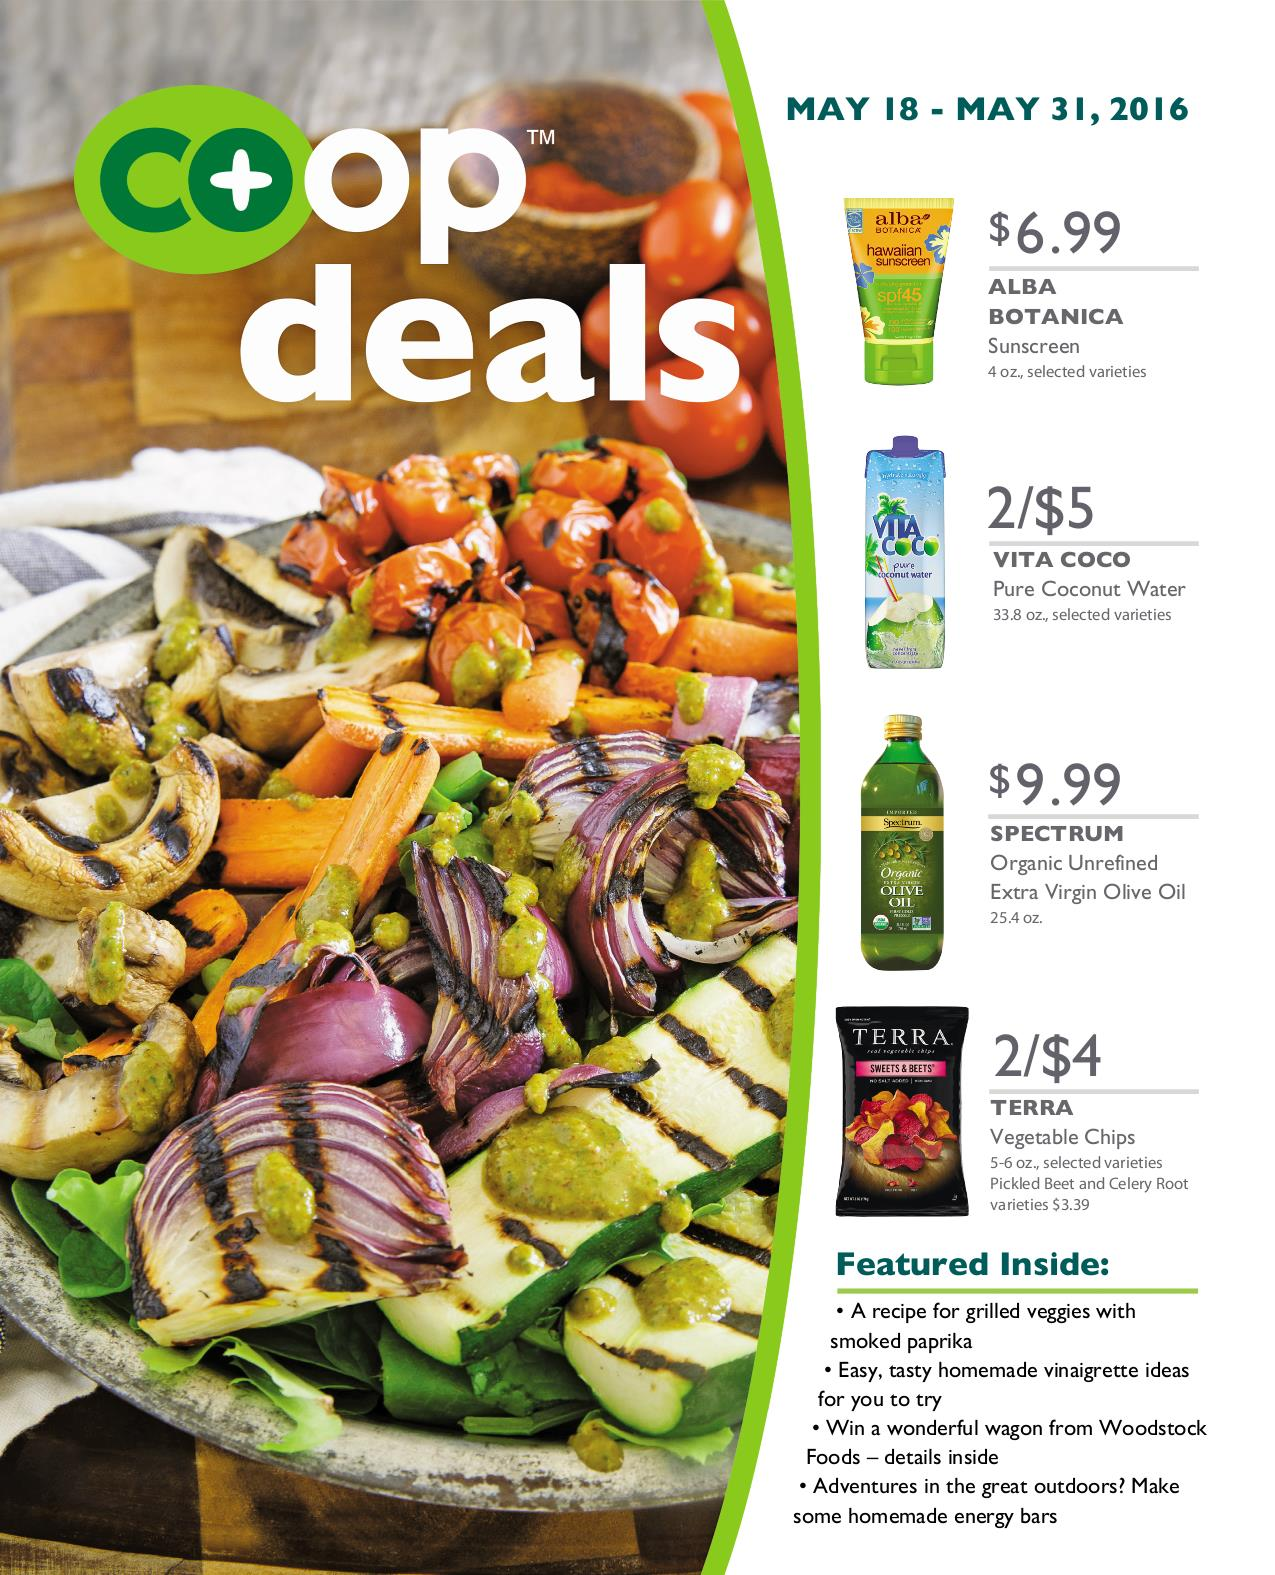 Co+op_Deals_May_2016_Flyer_B